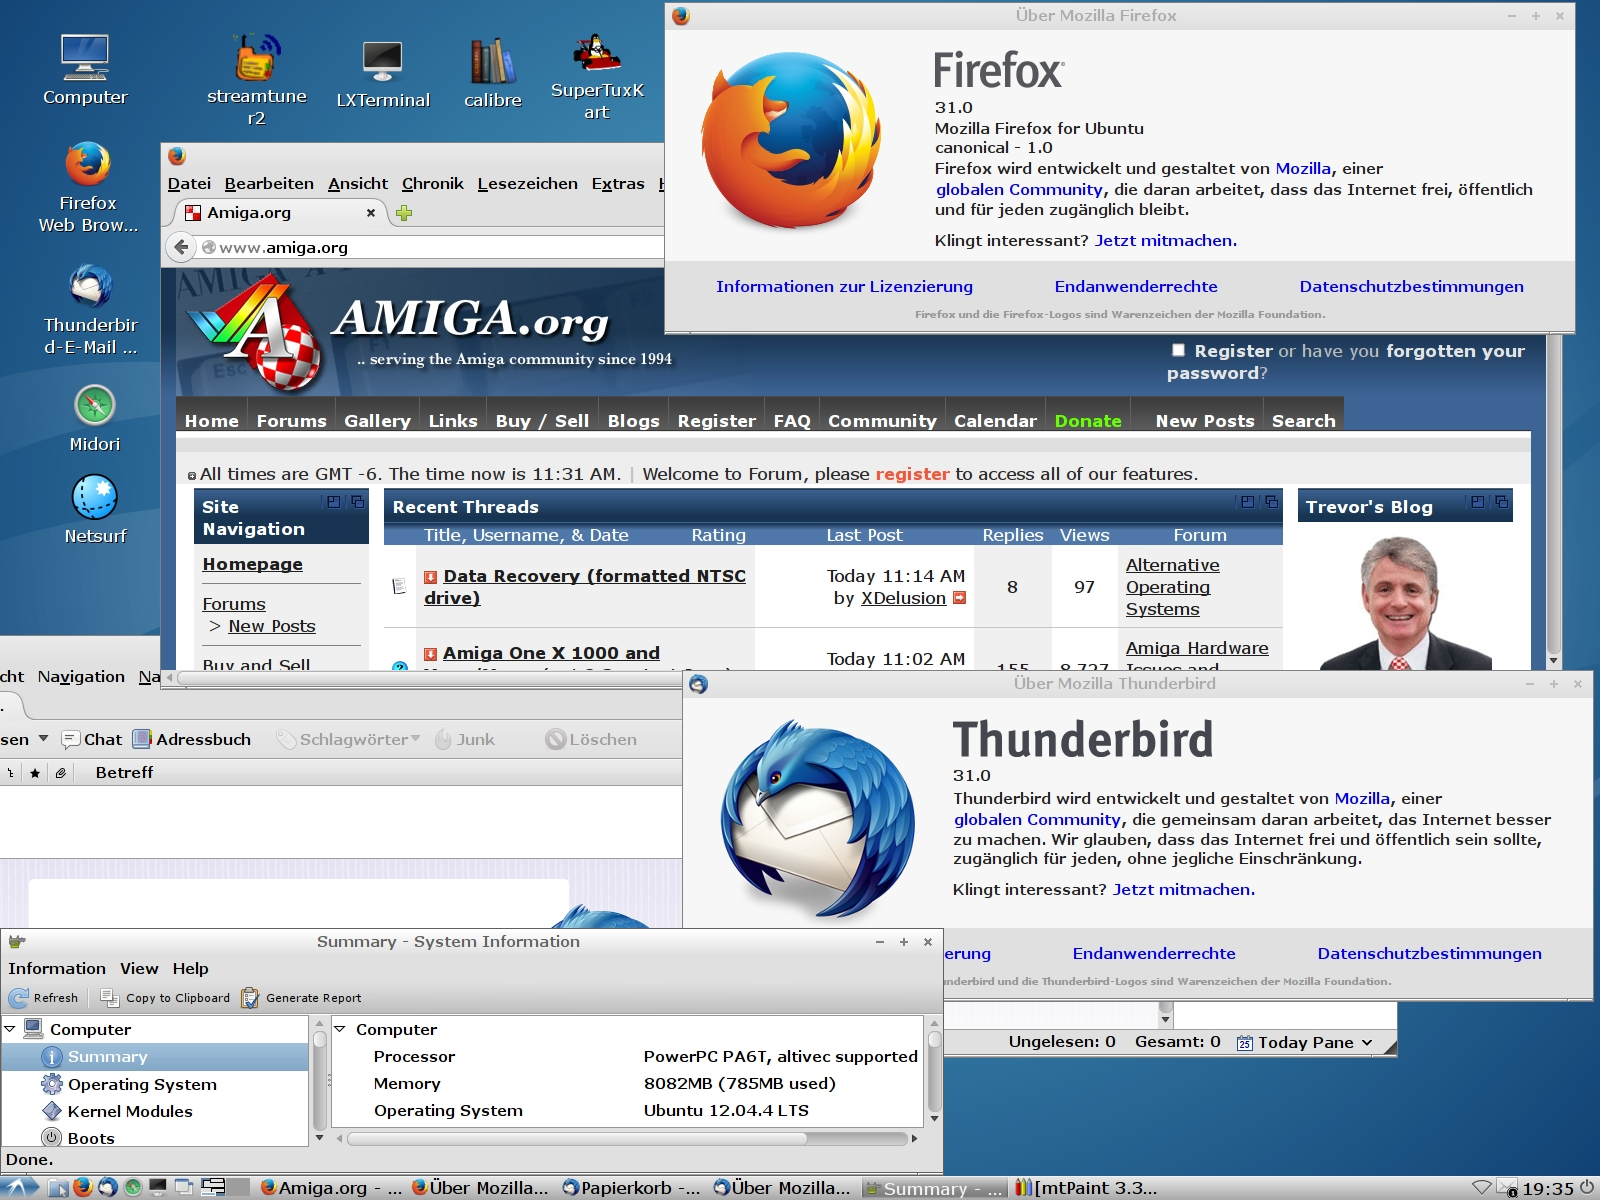 Thunderbird_31_and_Firefox_31_A1-X1000.jpg